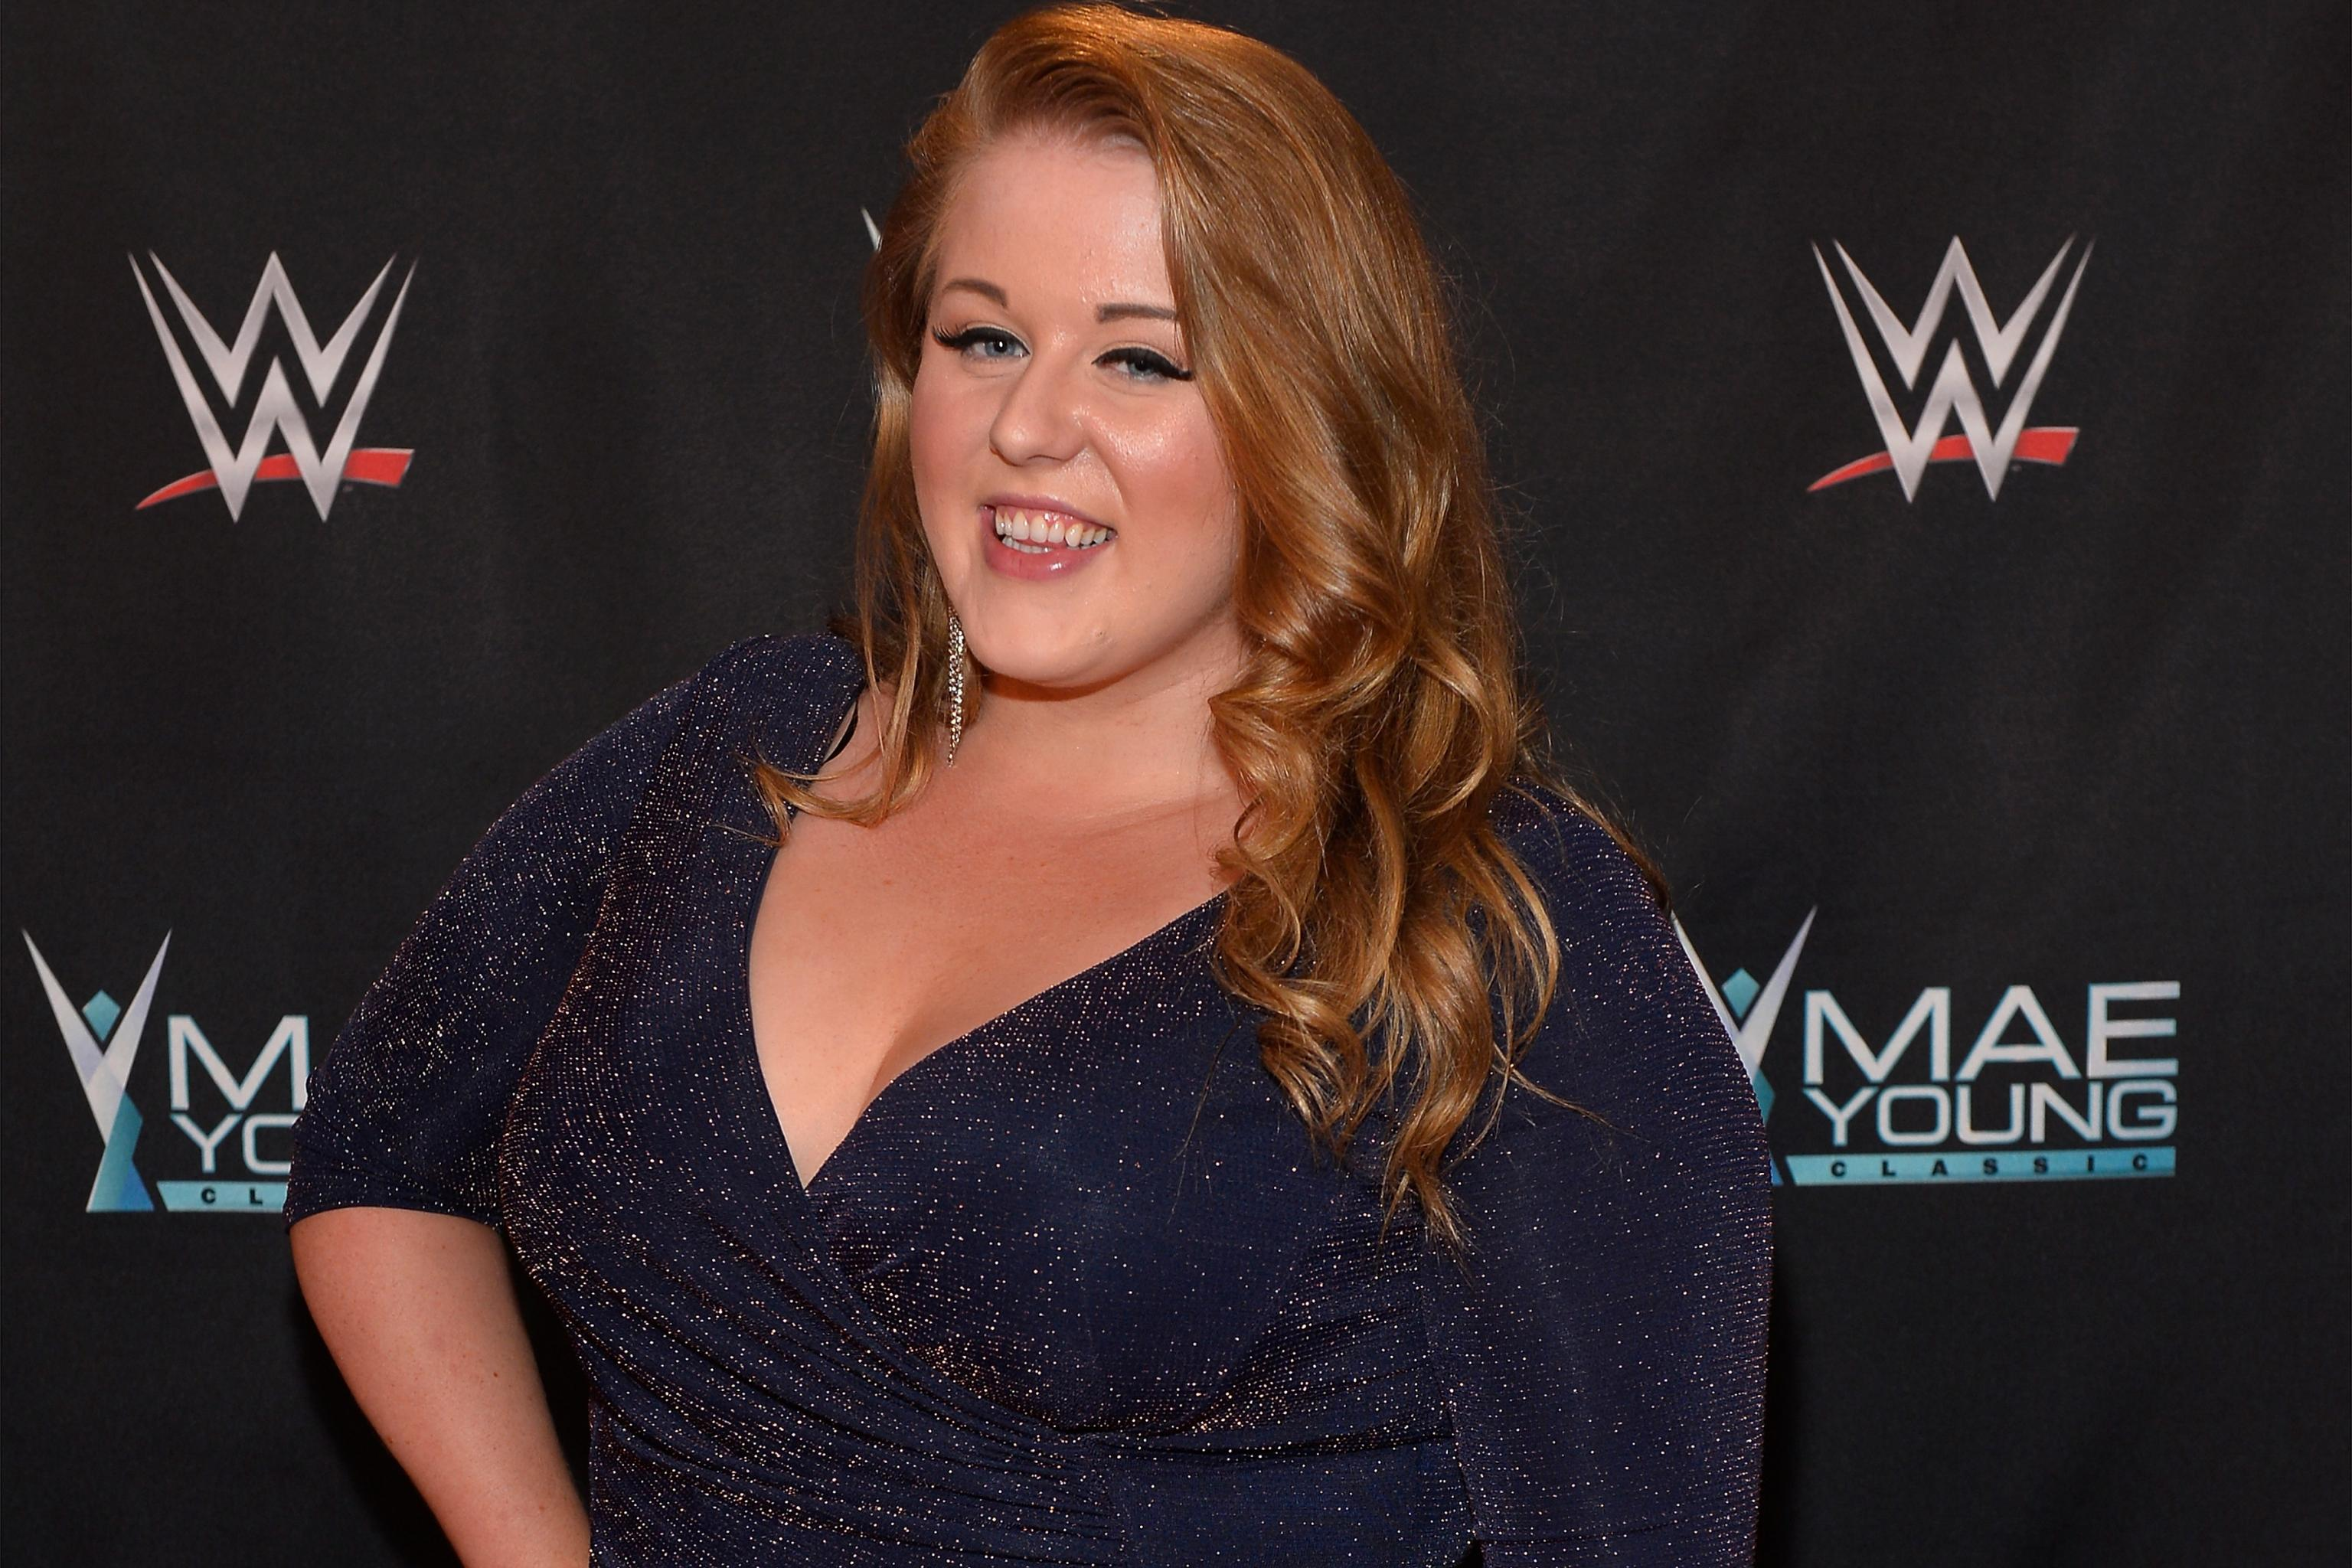 WWE NXT UK Star Piper Niven Reveals Bell's Palsy Diagnosis on Twitter   Bleacher Report   Latest News, Videos and Highlights